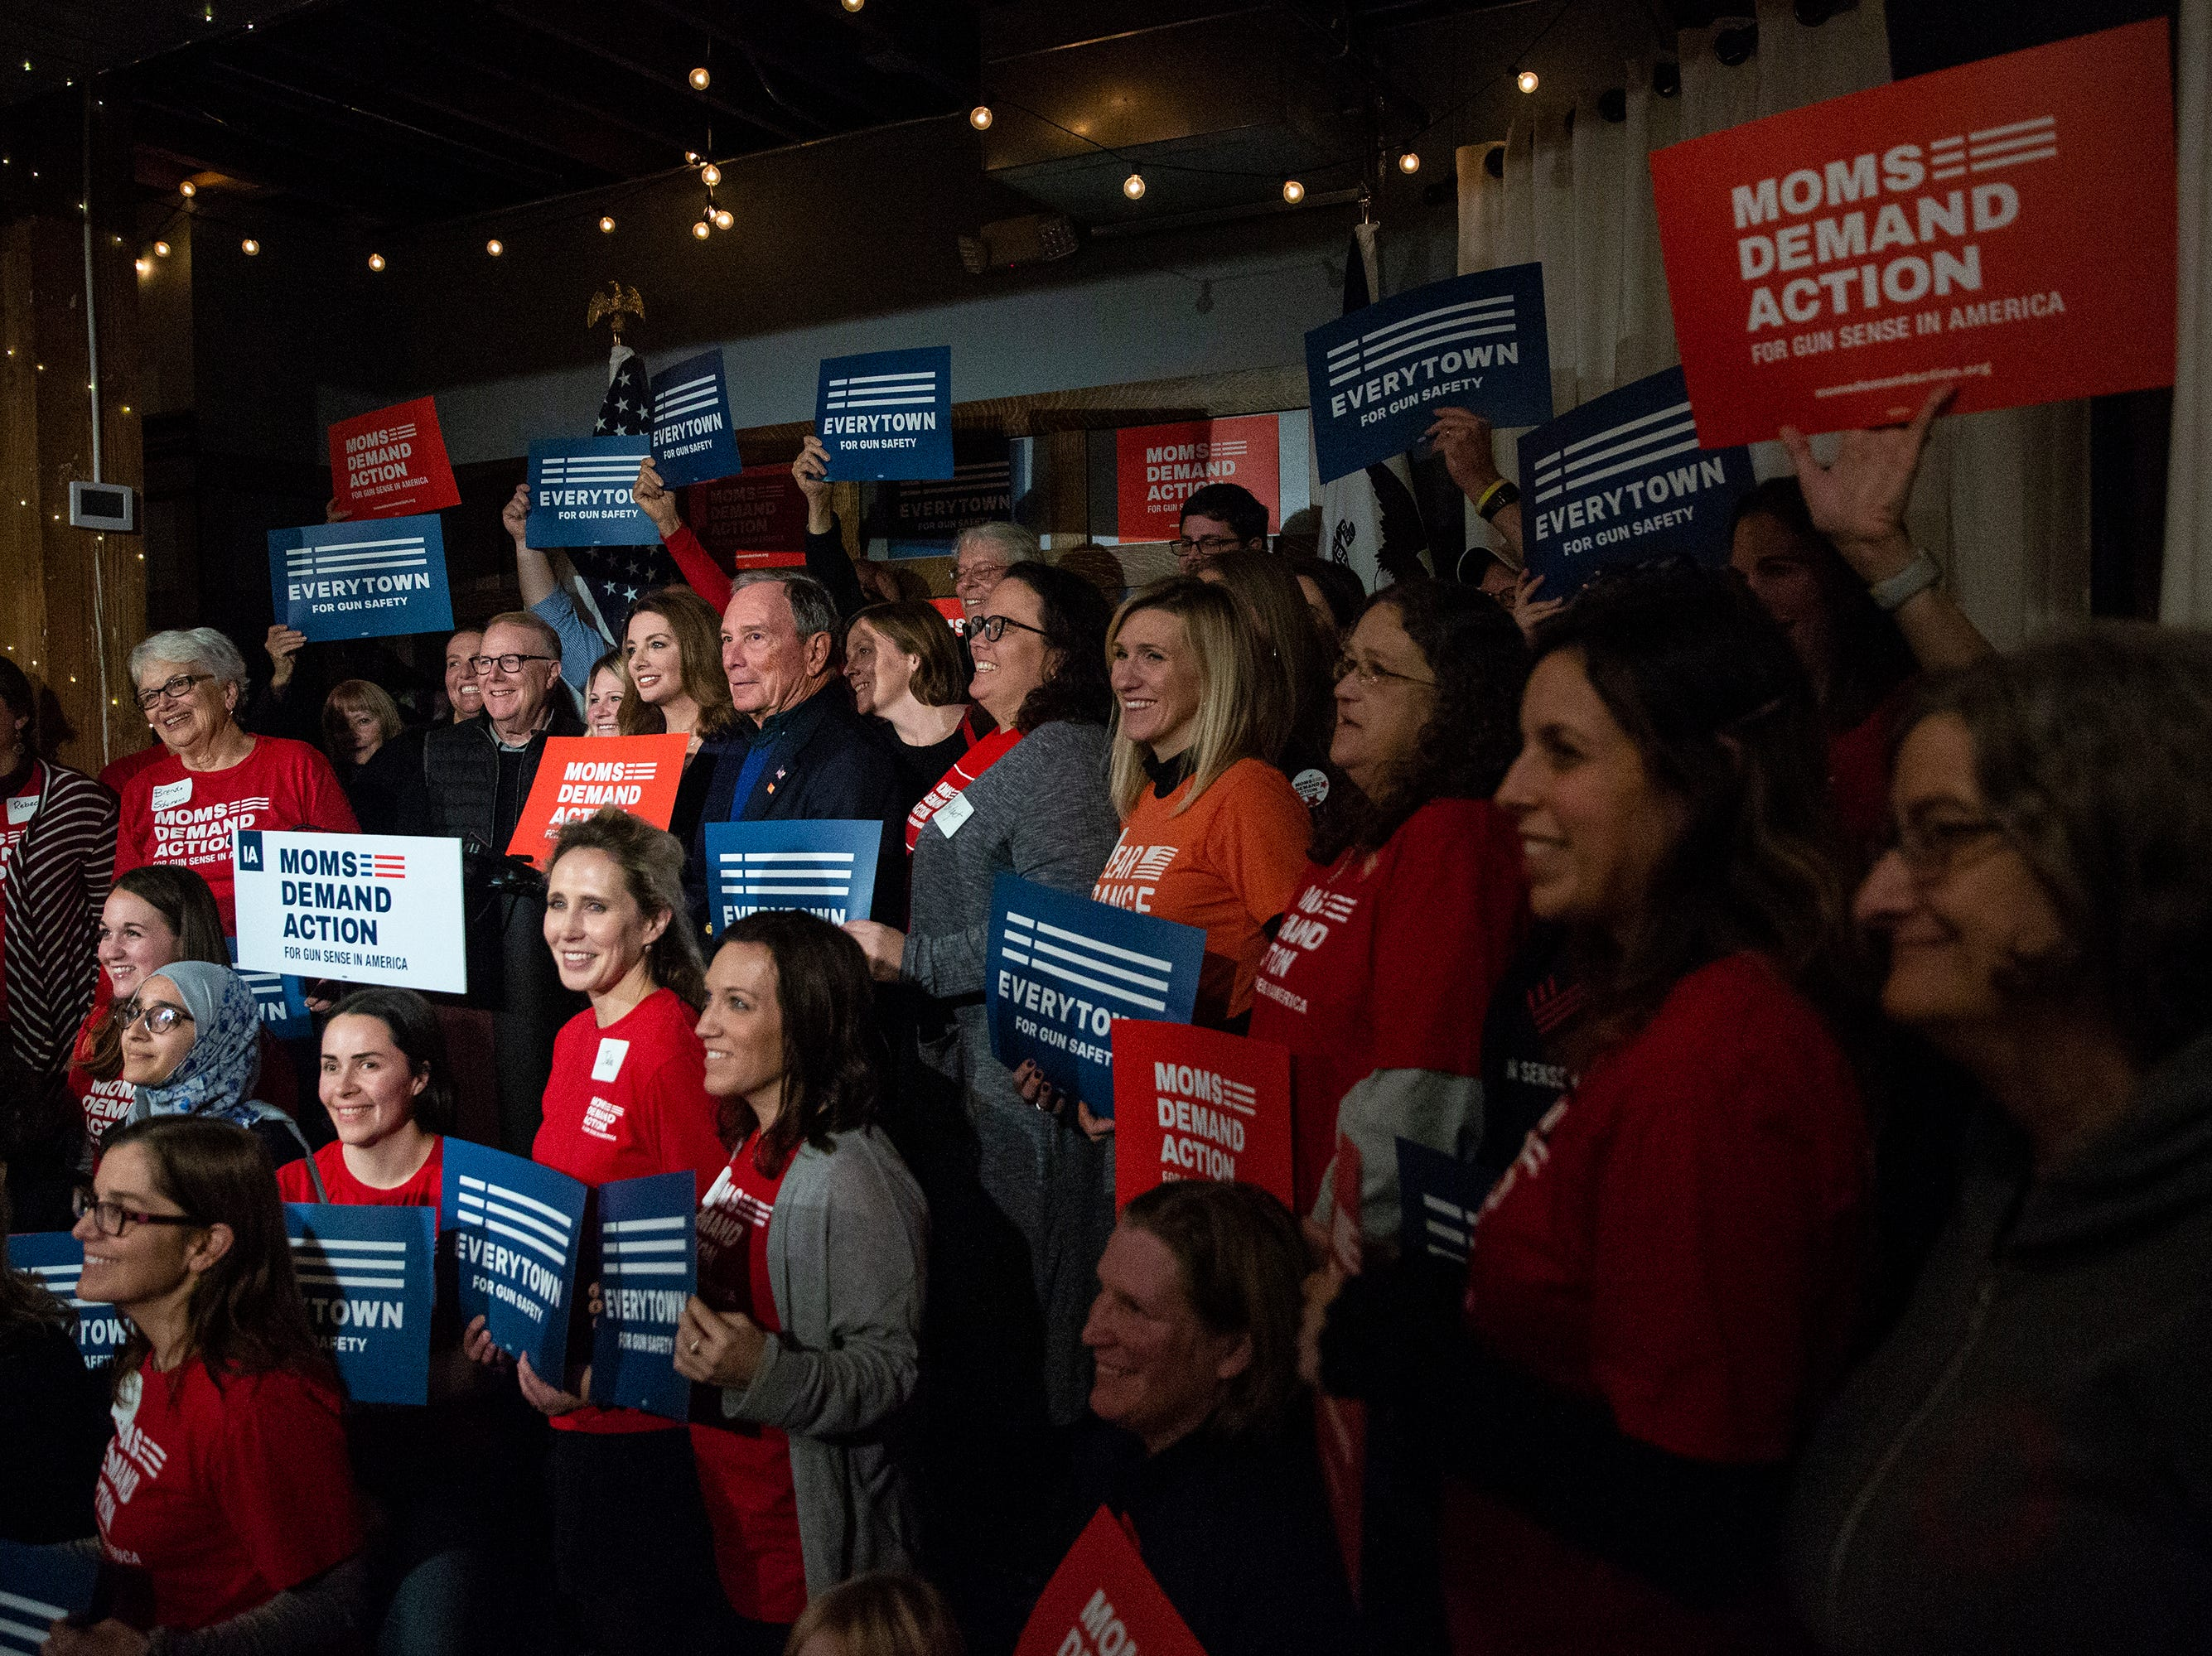 Former New York City Mayor Michael Bloomberg poses for a photo with the attendees of the Iowa Moms Demand Action member meeting he was visiting on Tuesday, Dec. 4, 2018, at the Iowa Taproom in Des Moines.